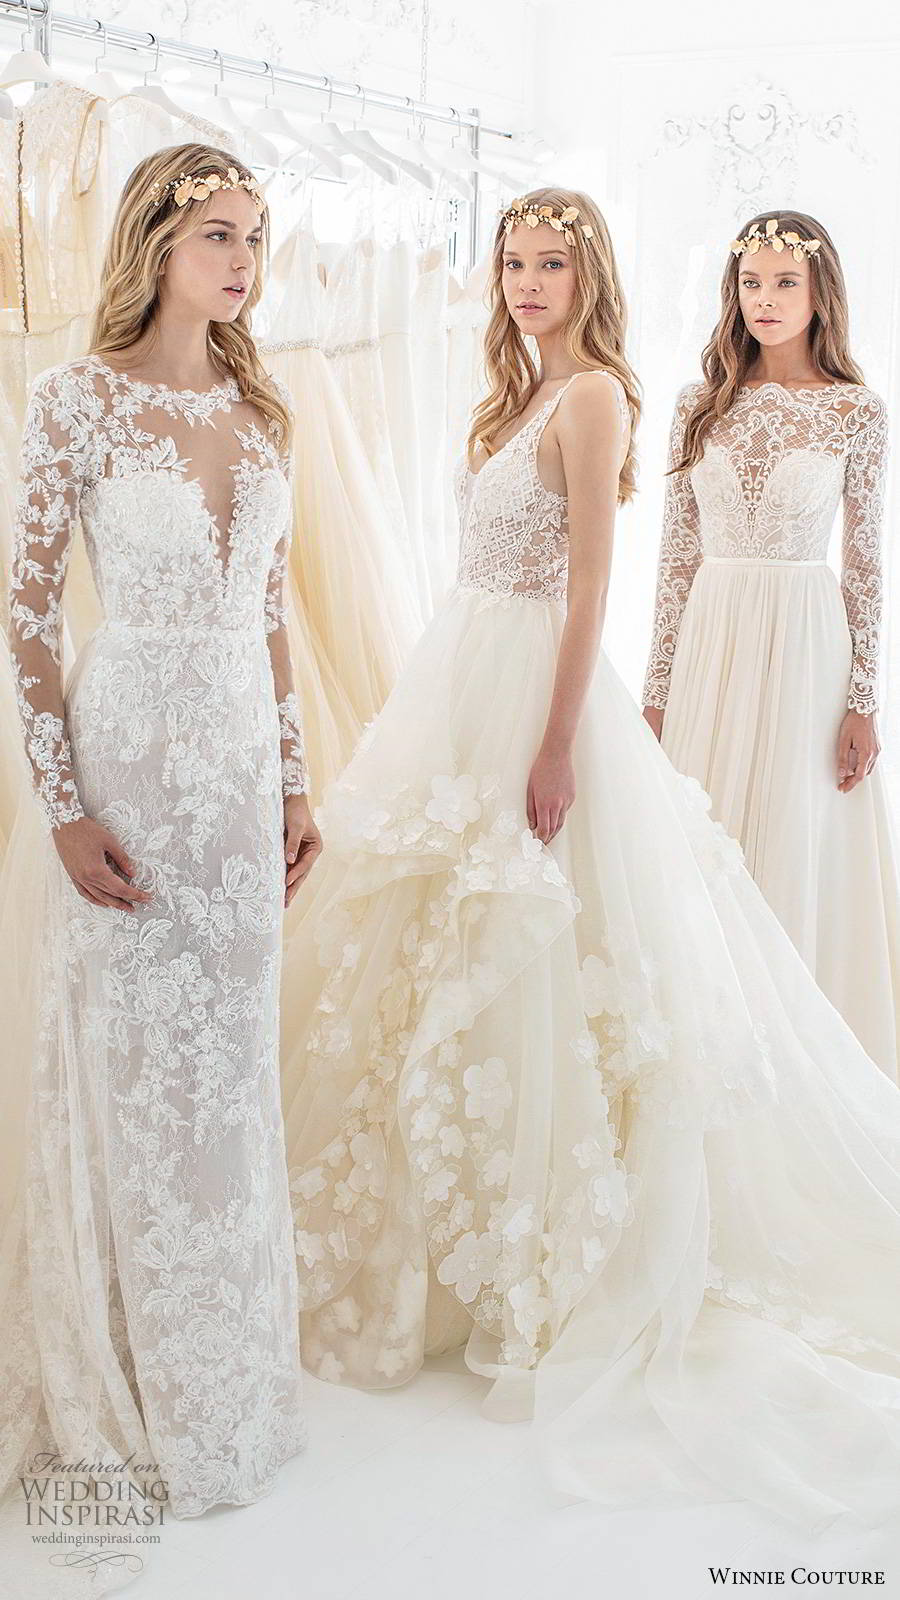 winnie couture 2019 bridal sleeveless straps plunging v neckline embellished bodice tiered skirt a line ball gown romantic wedding dress chapel train (2) sv